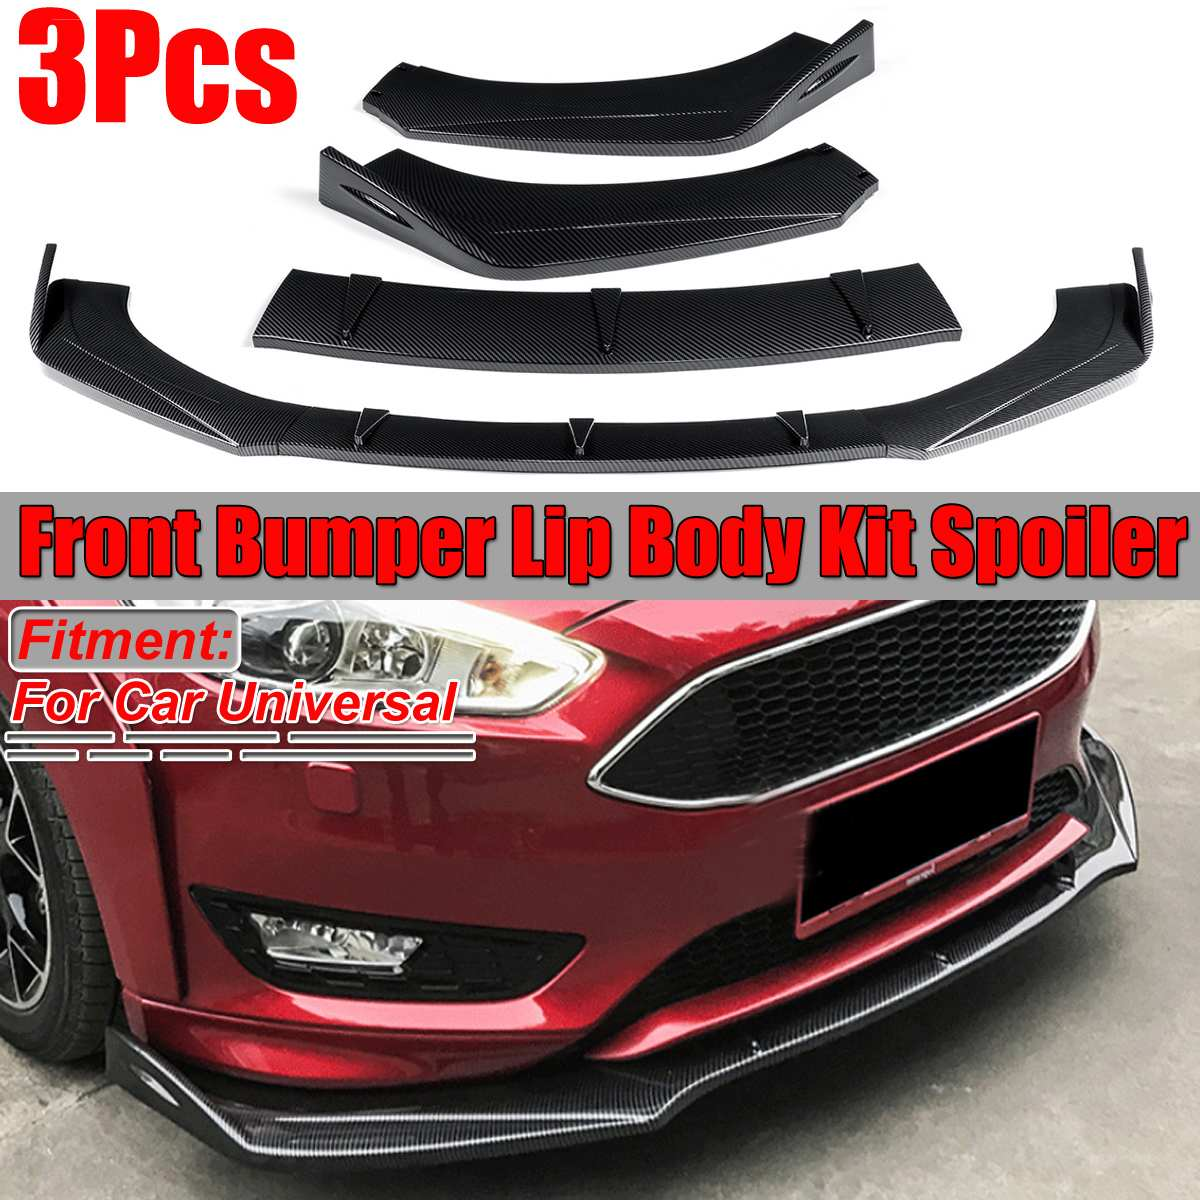 New Universal Car Front Bumper Lip Splitter <font><b>Body</b></font> <font><b>Kit</b></font> Spoiler Diffuser For Ford For BMW For Benz For <font><b>Audi</b></font> A5 Sline S5 <font><b>RS5</b></font> 09-16 image